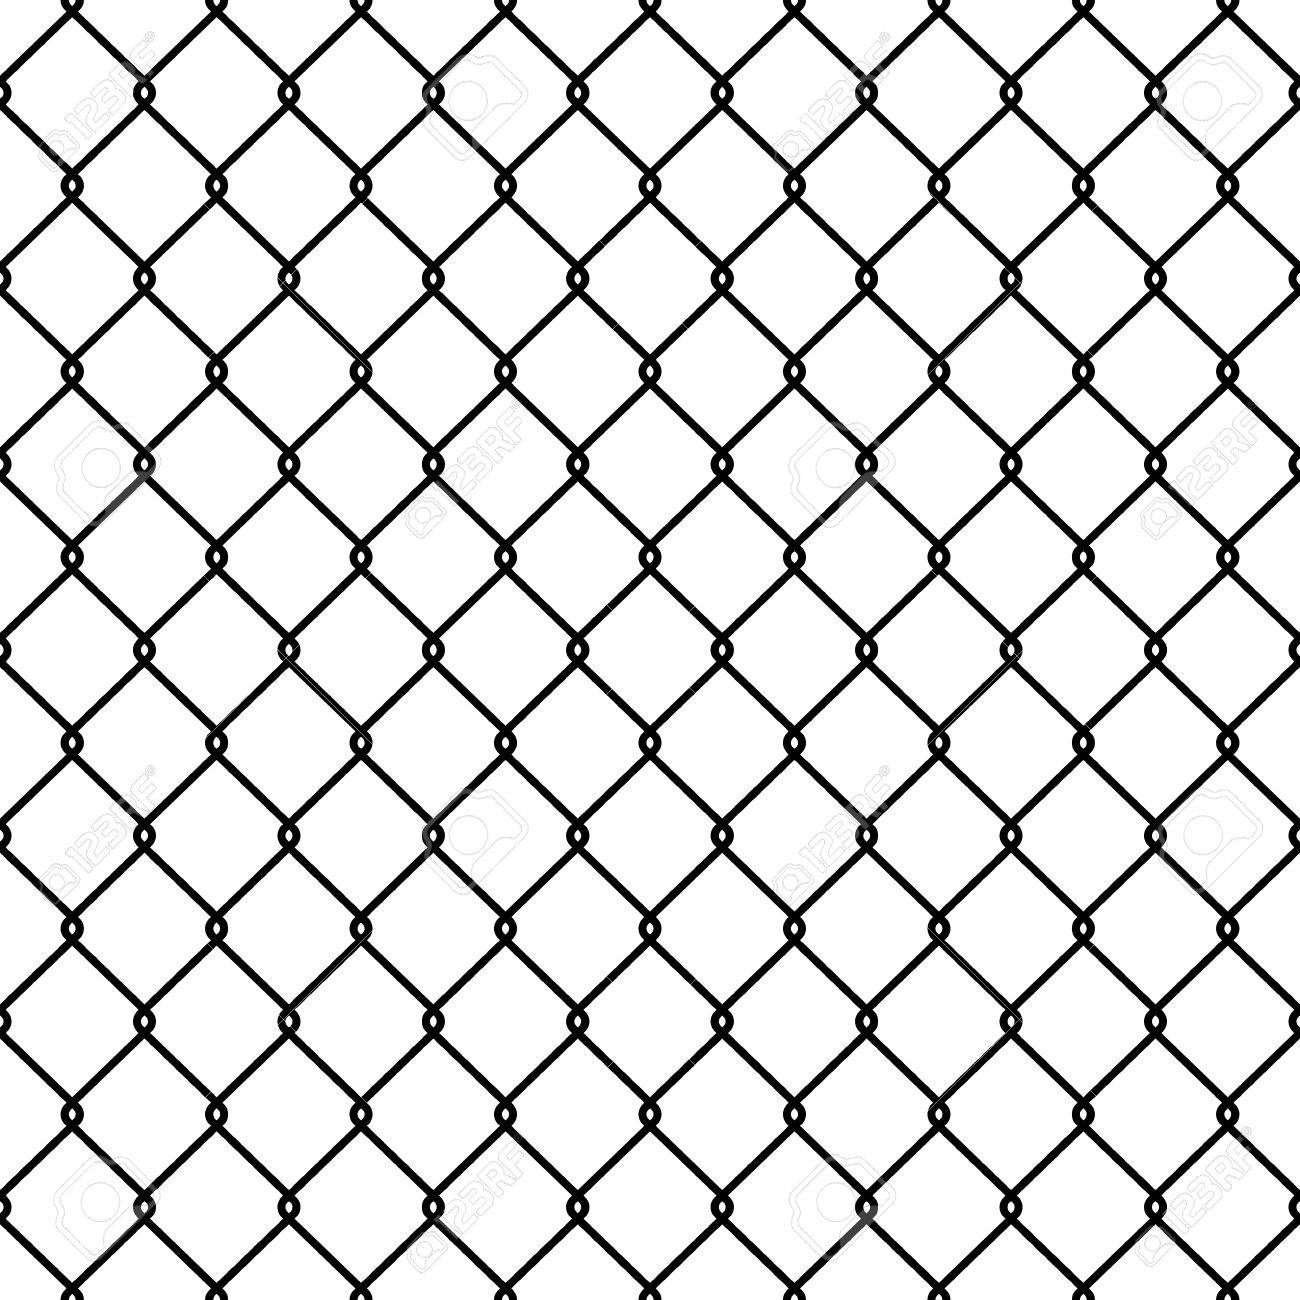 Seamless Wire Grid Fence Center Triac Schematics Group Picture Image By Tag Keywordpicturescom Steel Mesh Background Vector Illustration Royalty Rh 123rf Com Black Panel